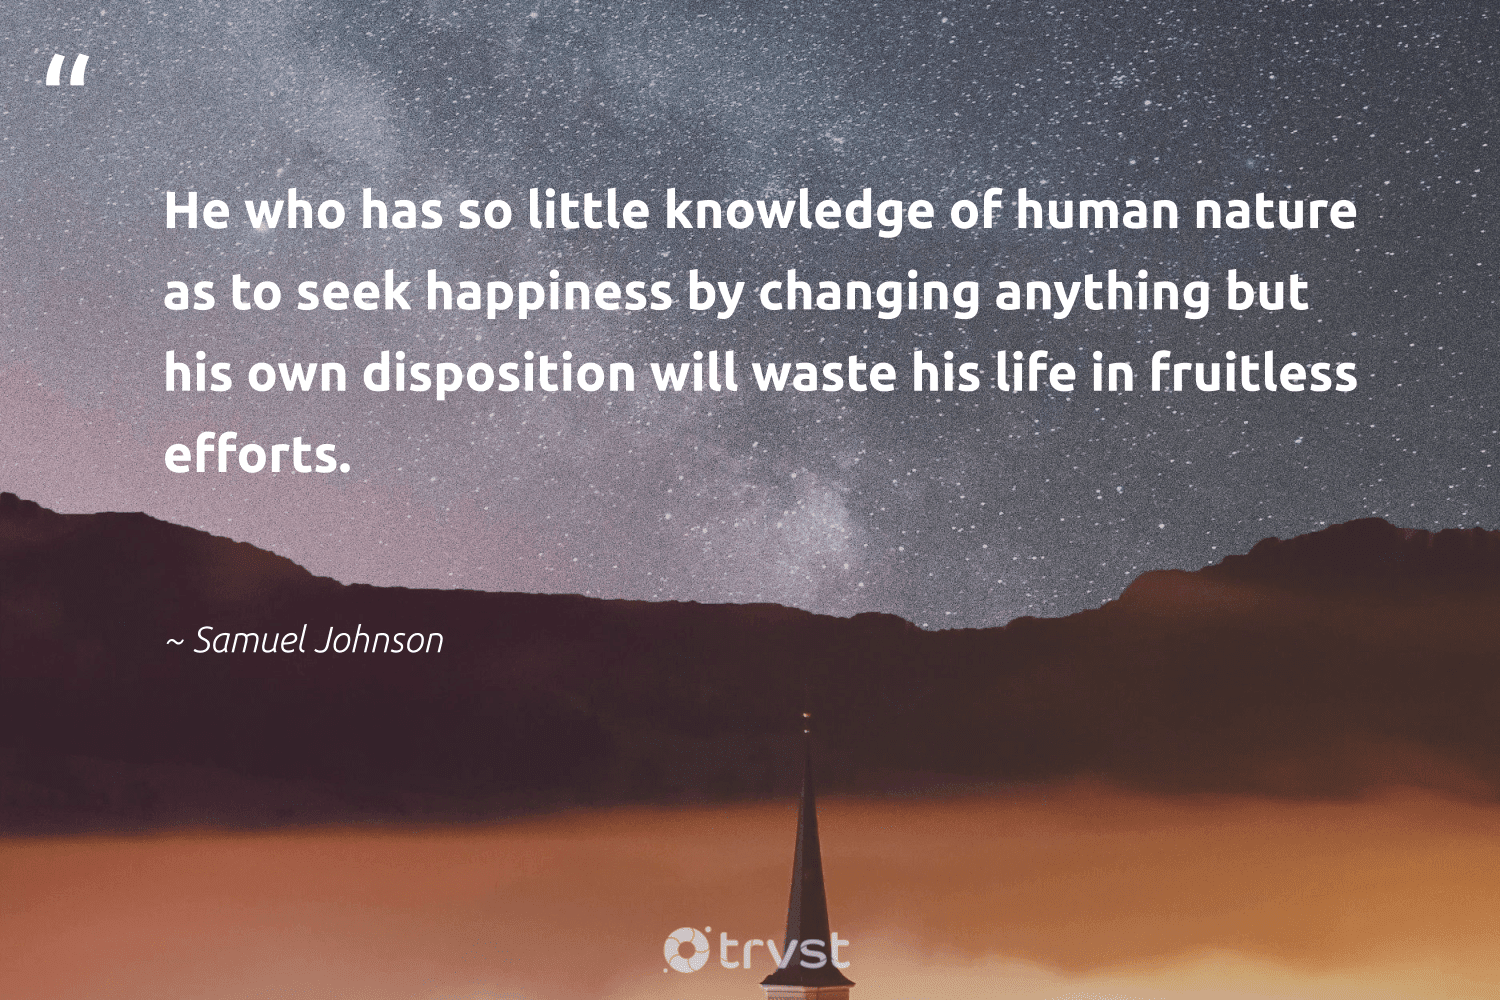 """""""He who has so little knowledge of human nature as to seek happiness by changing anything but his own disposition will waste his life in fruitless efforts.""""  - Samuel Johnson #trvst #quotes #waste #nature #happiness #earth #health #sustainableliving #gogreen #environment #begreat #sustainability"""